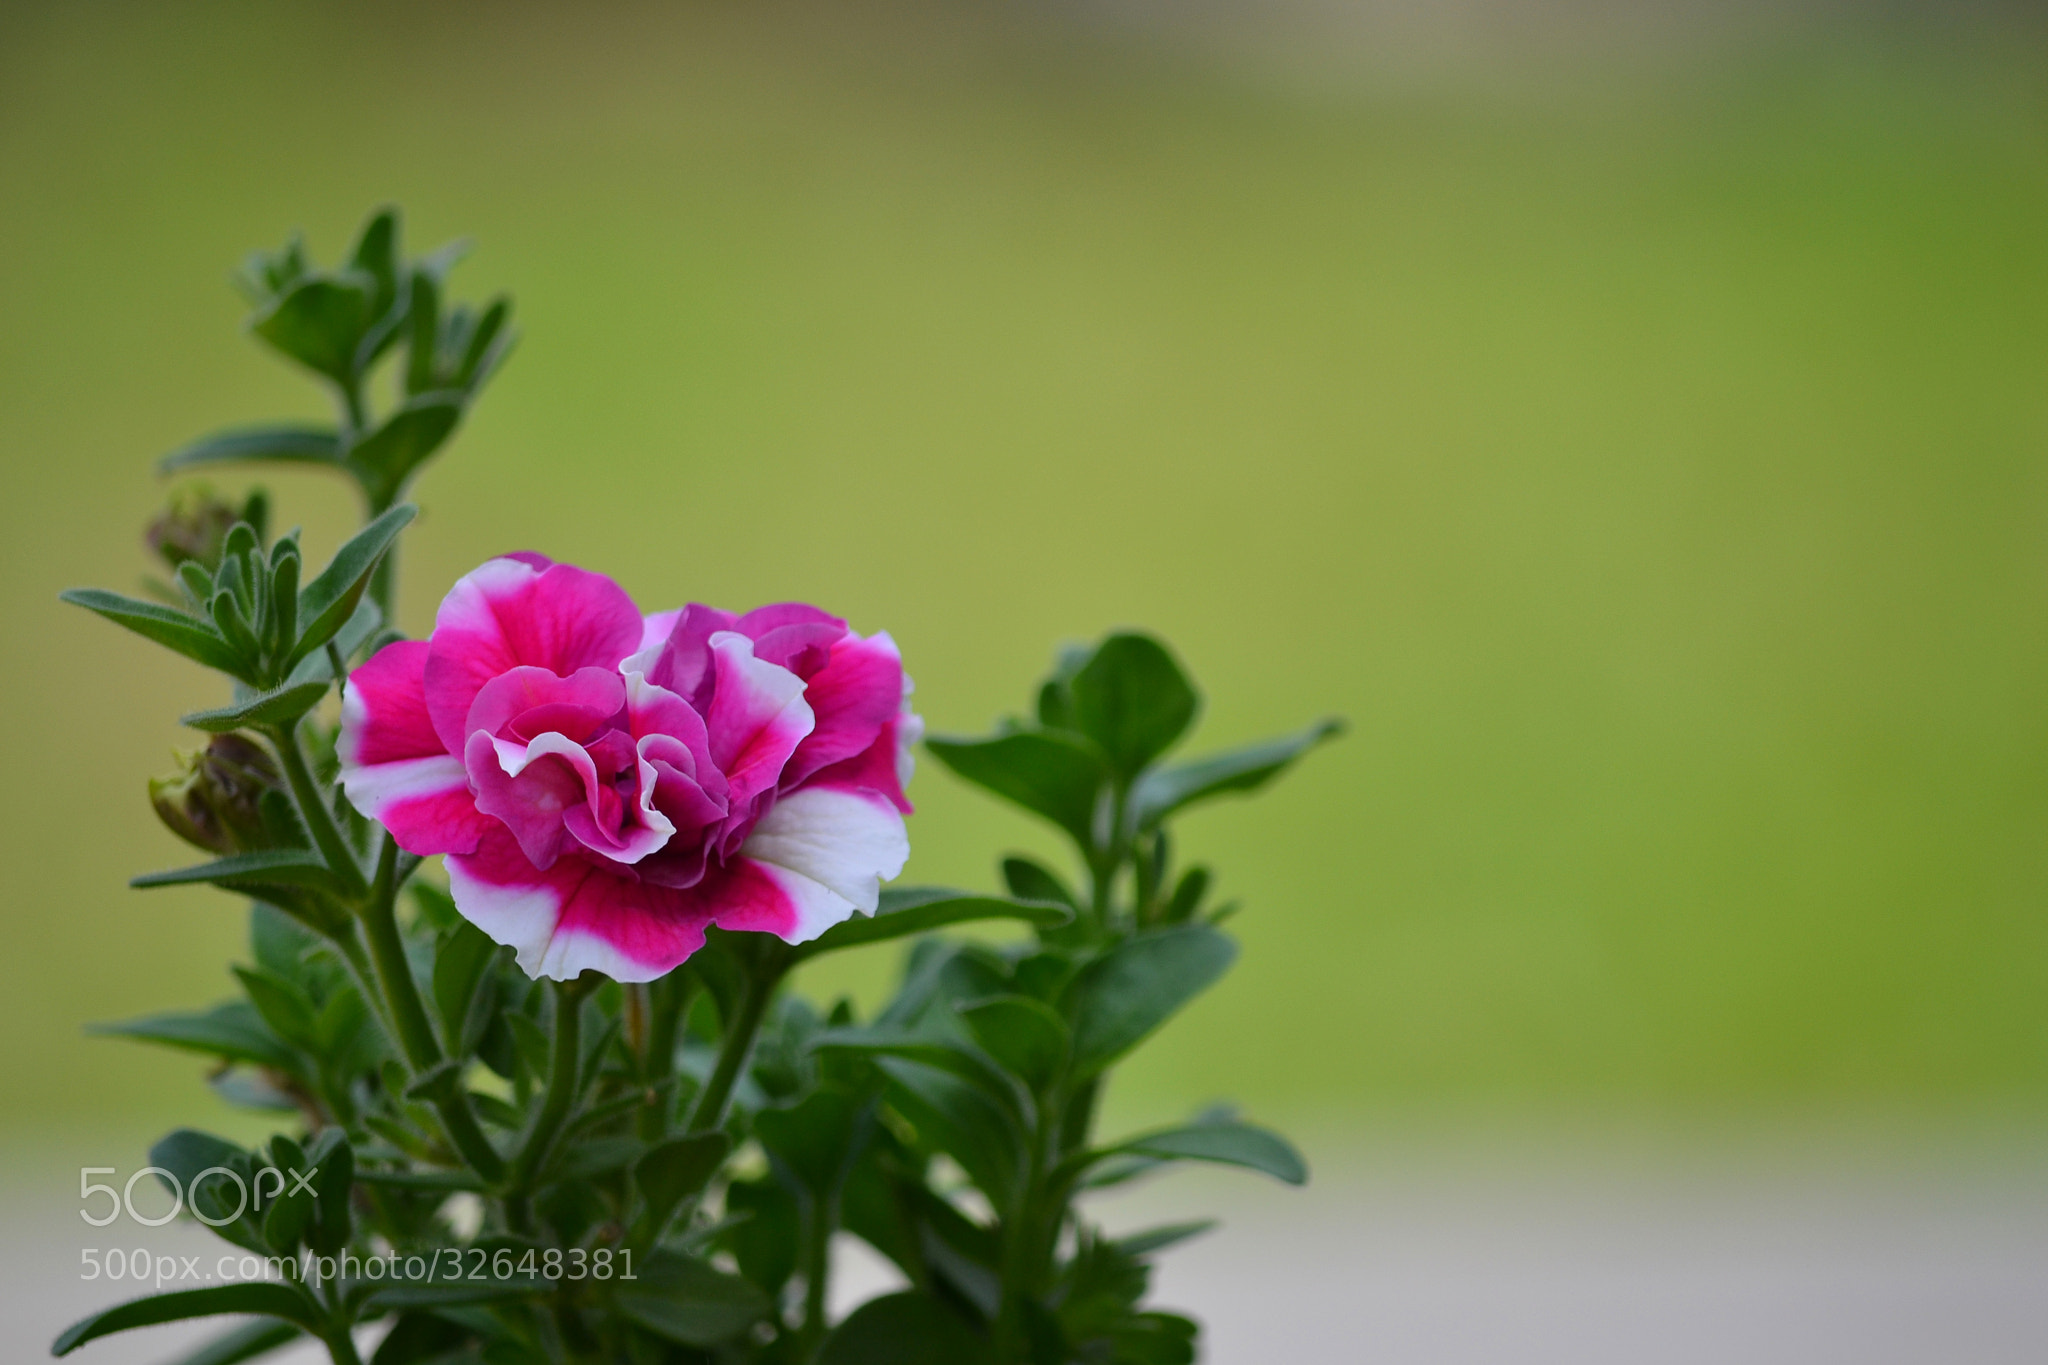 Photograph The may flower by Salvo Mangiaglia on 500px